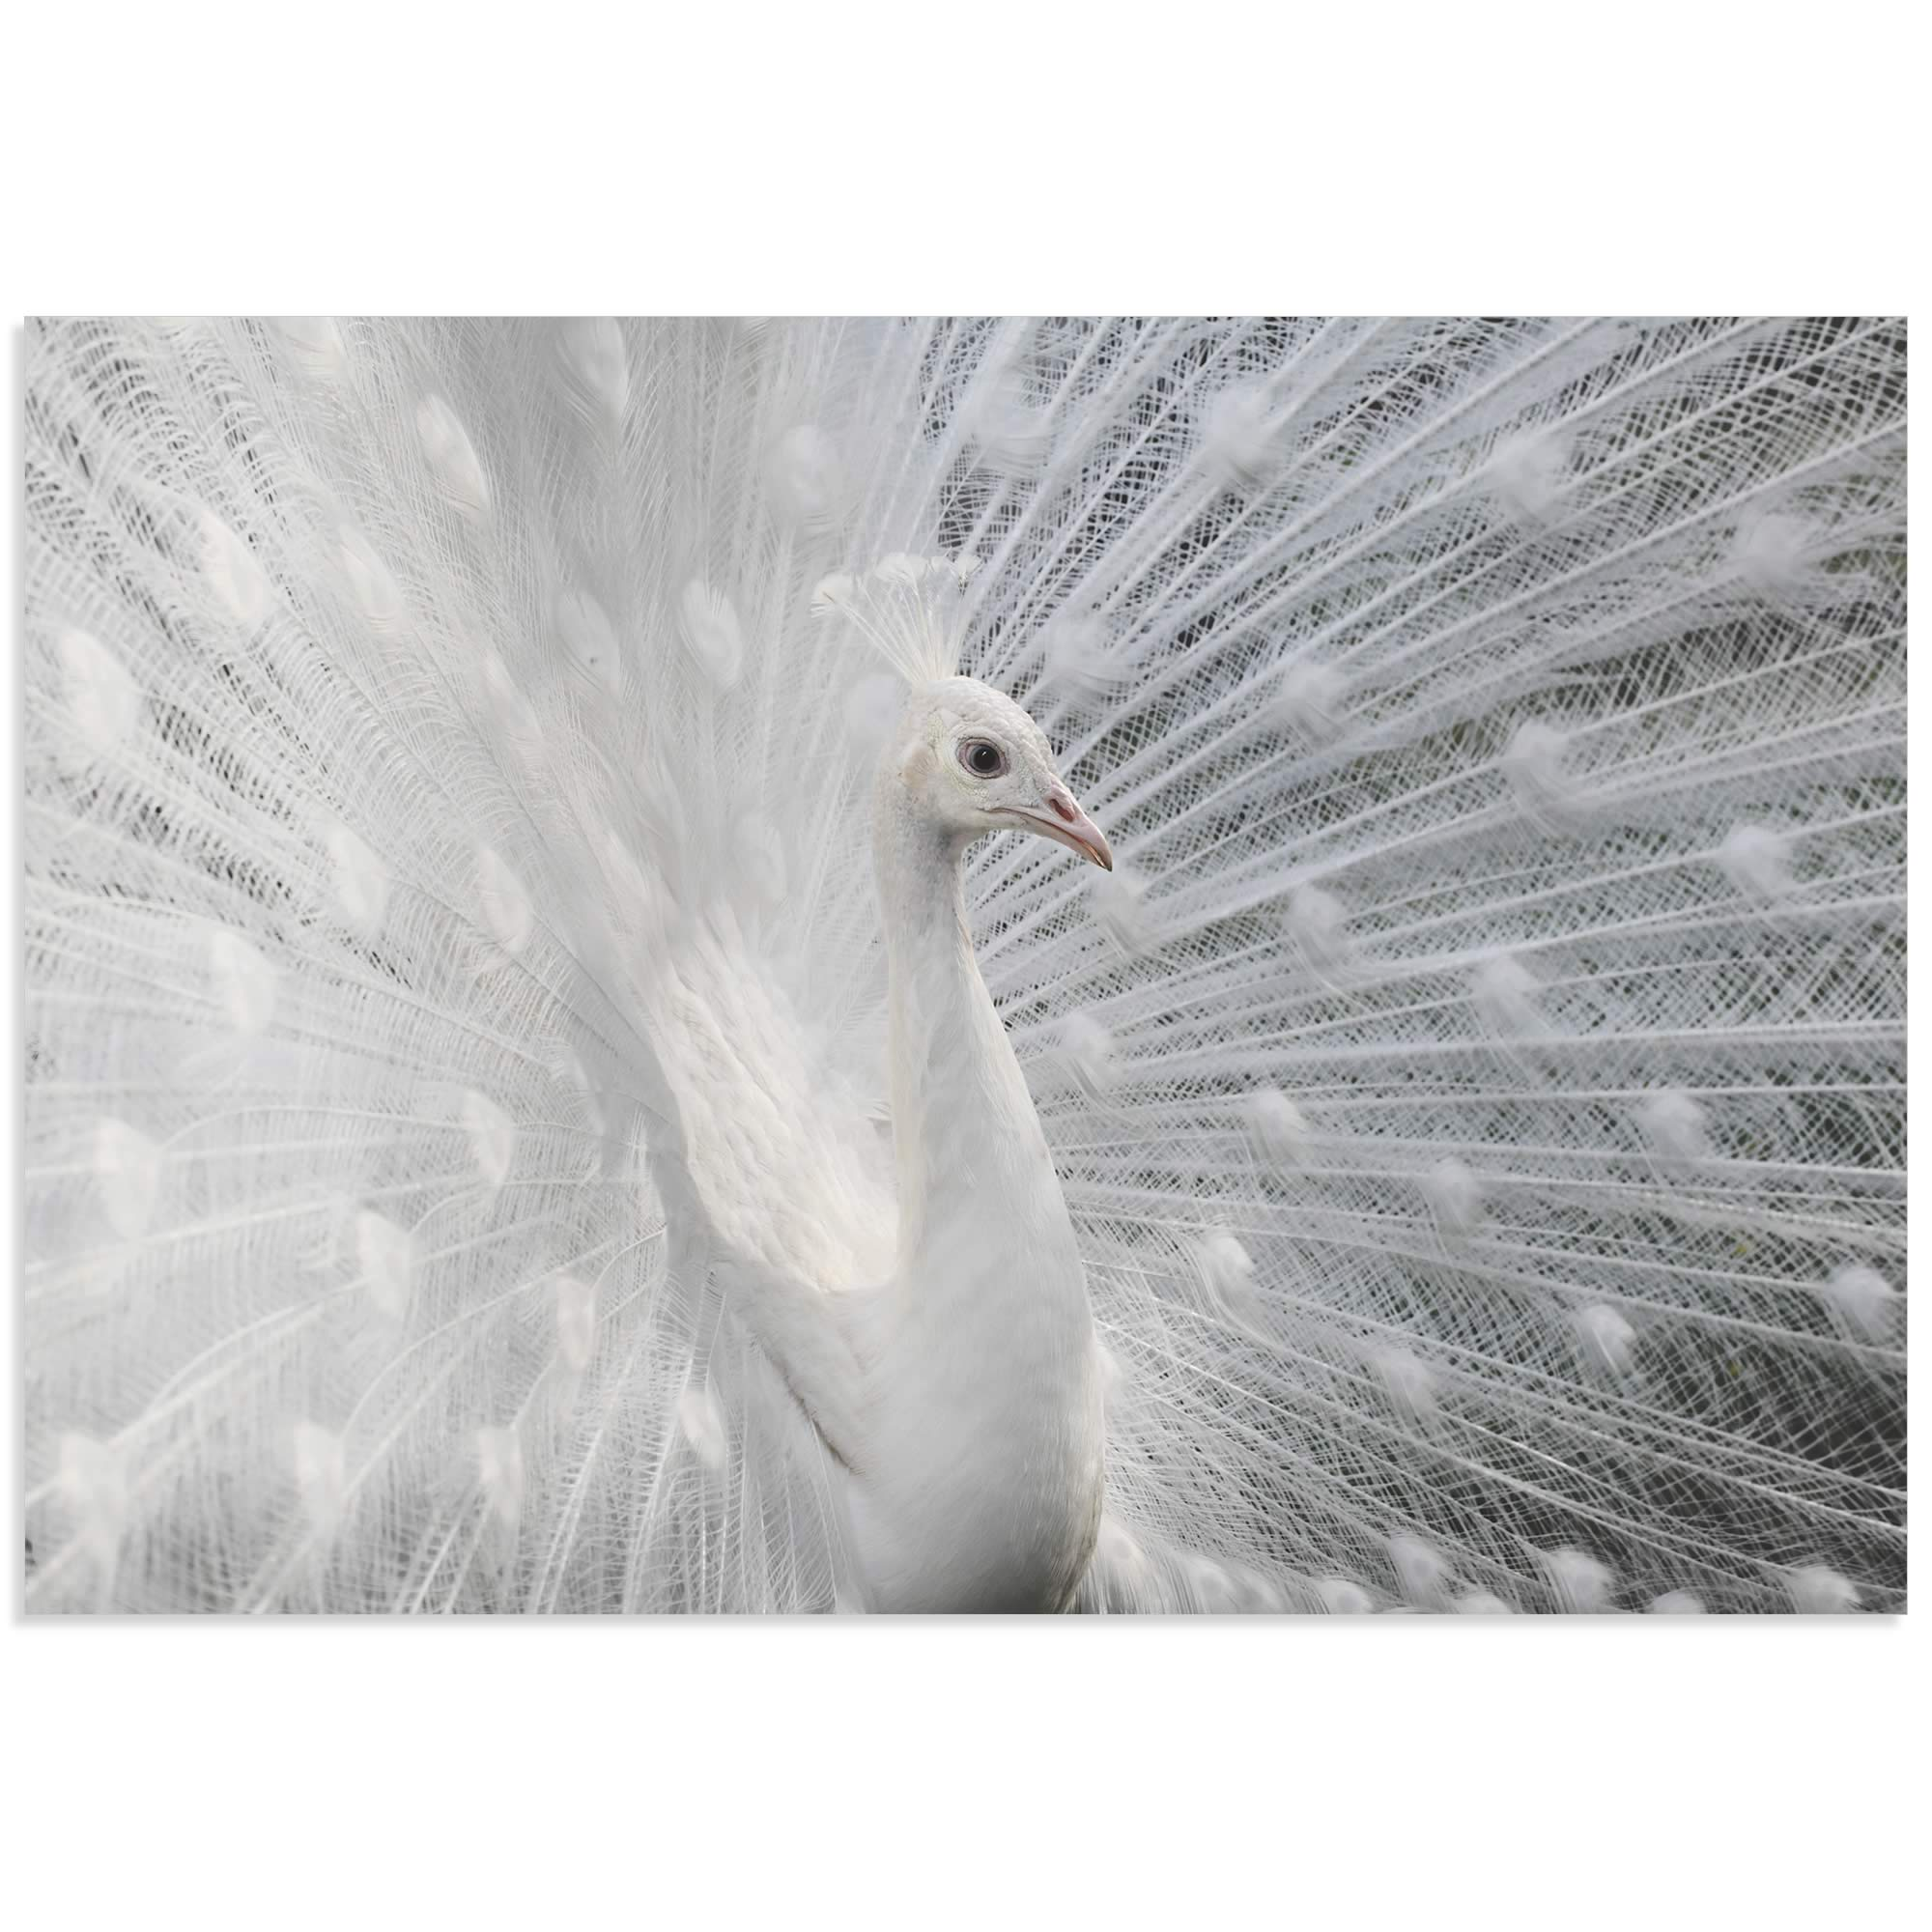 Snow White Peacock by Victoria Ivanova - White Peacock Art on Metal or Acrylic